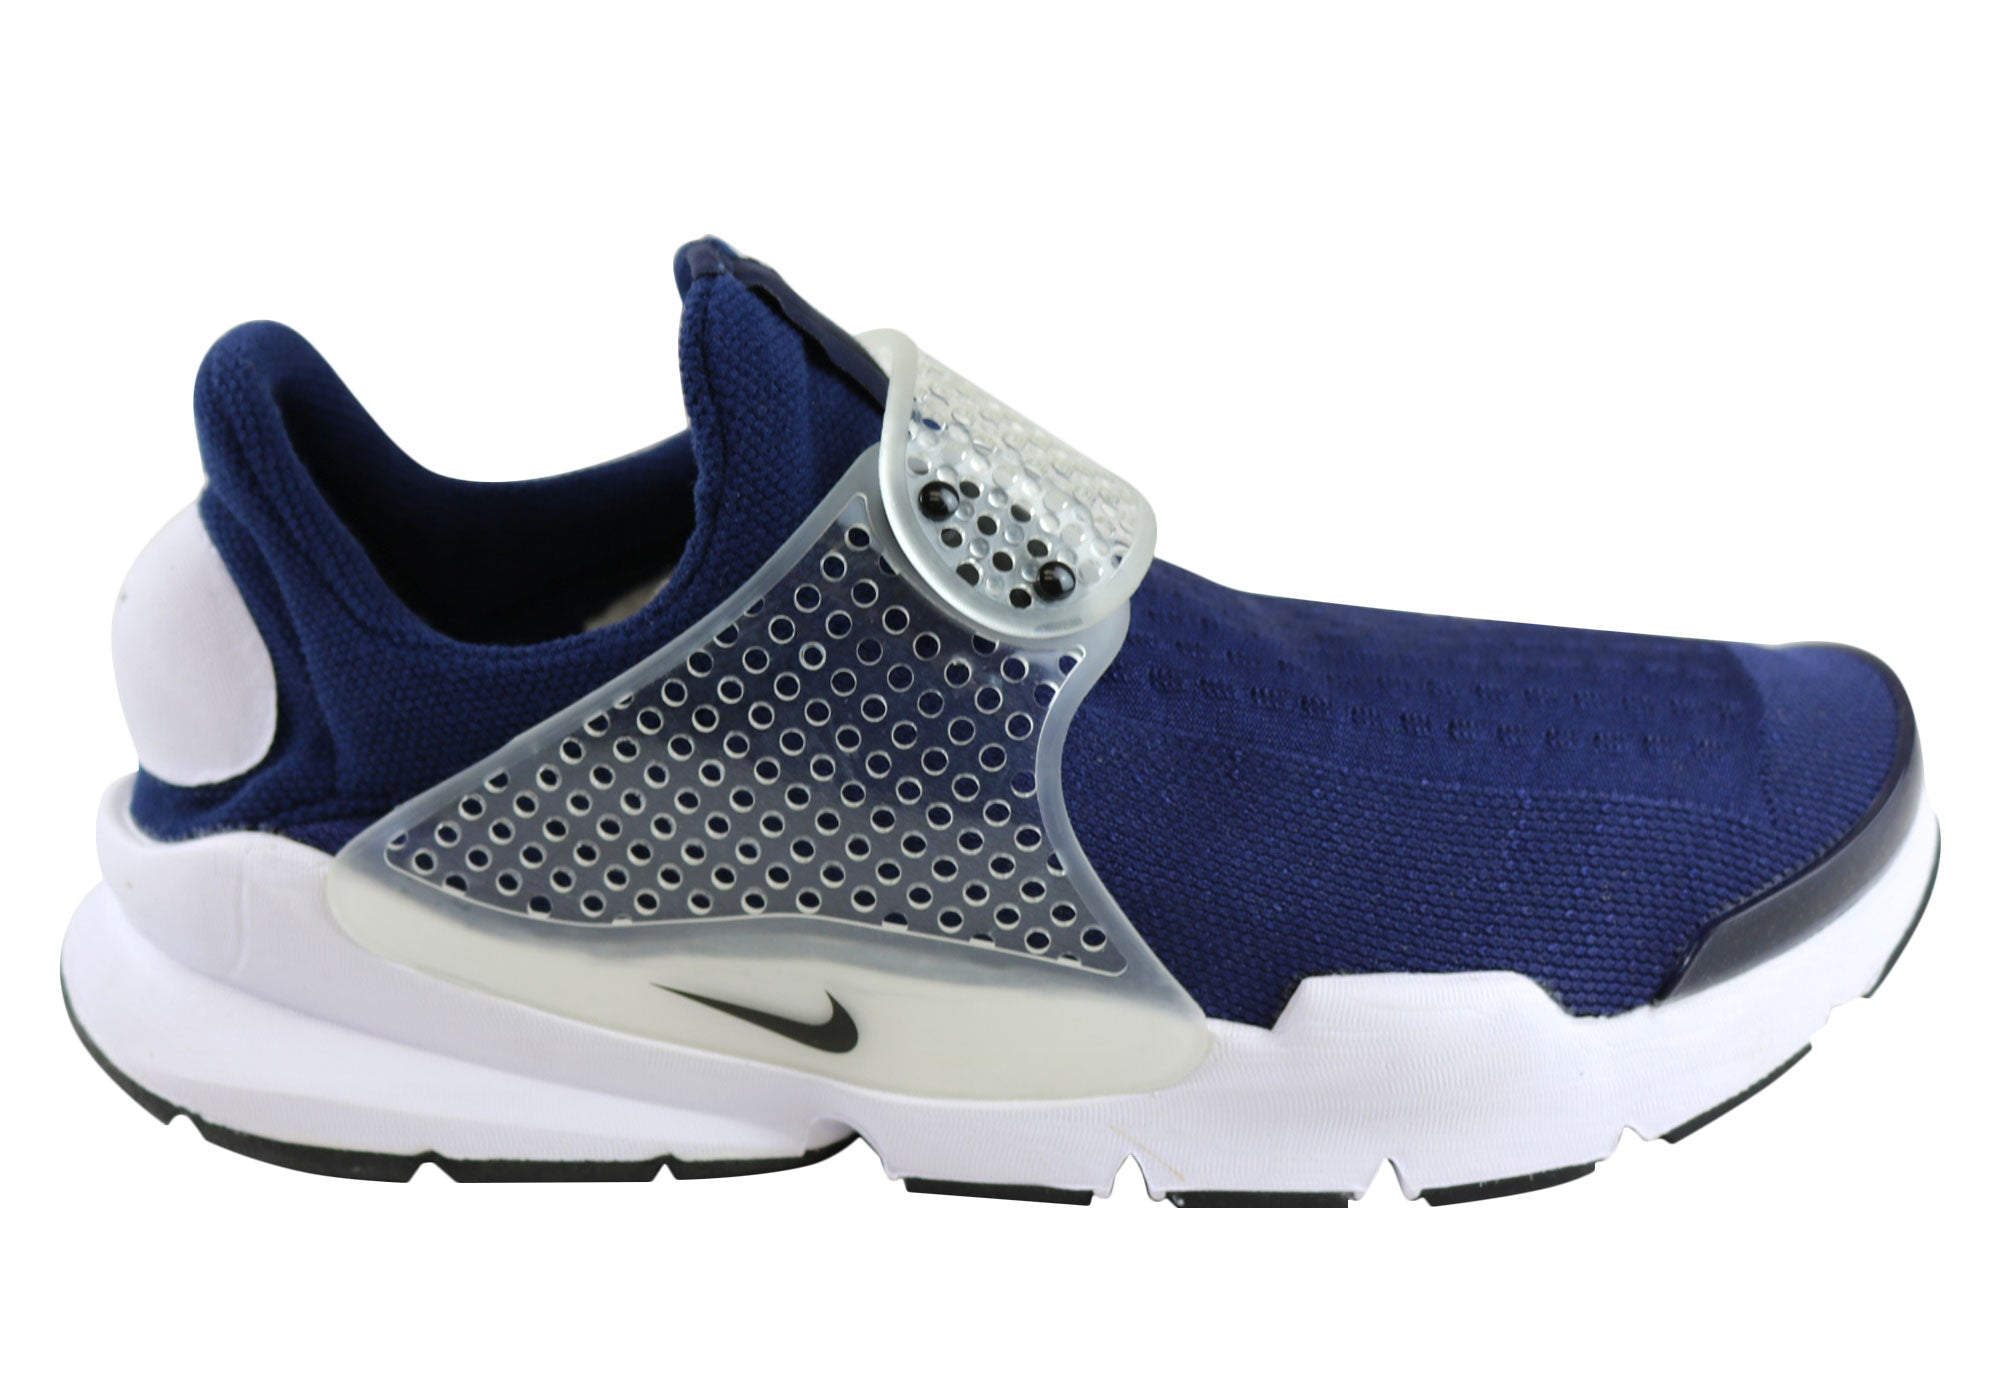 NEW-NIKE-SOCK-DART-MENS-COMFORTABLE-TRAINERS-CASUAL-SLIP-ON-SHOES